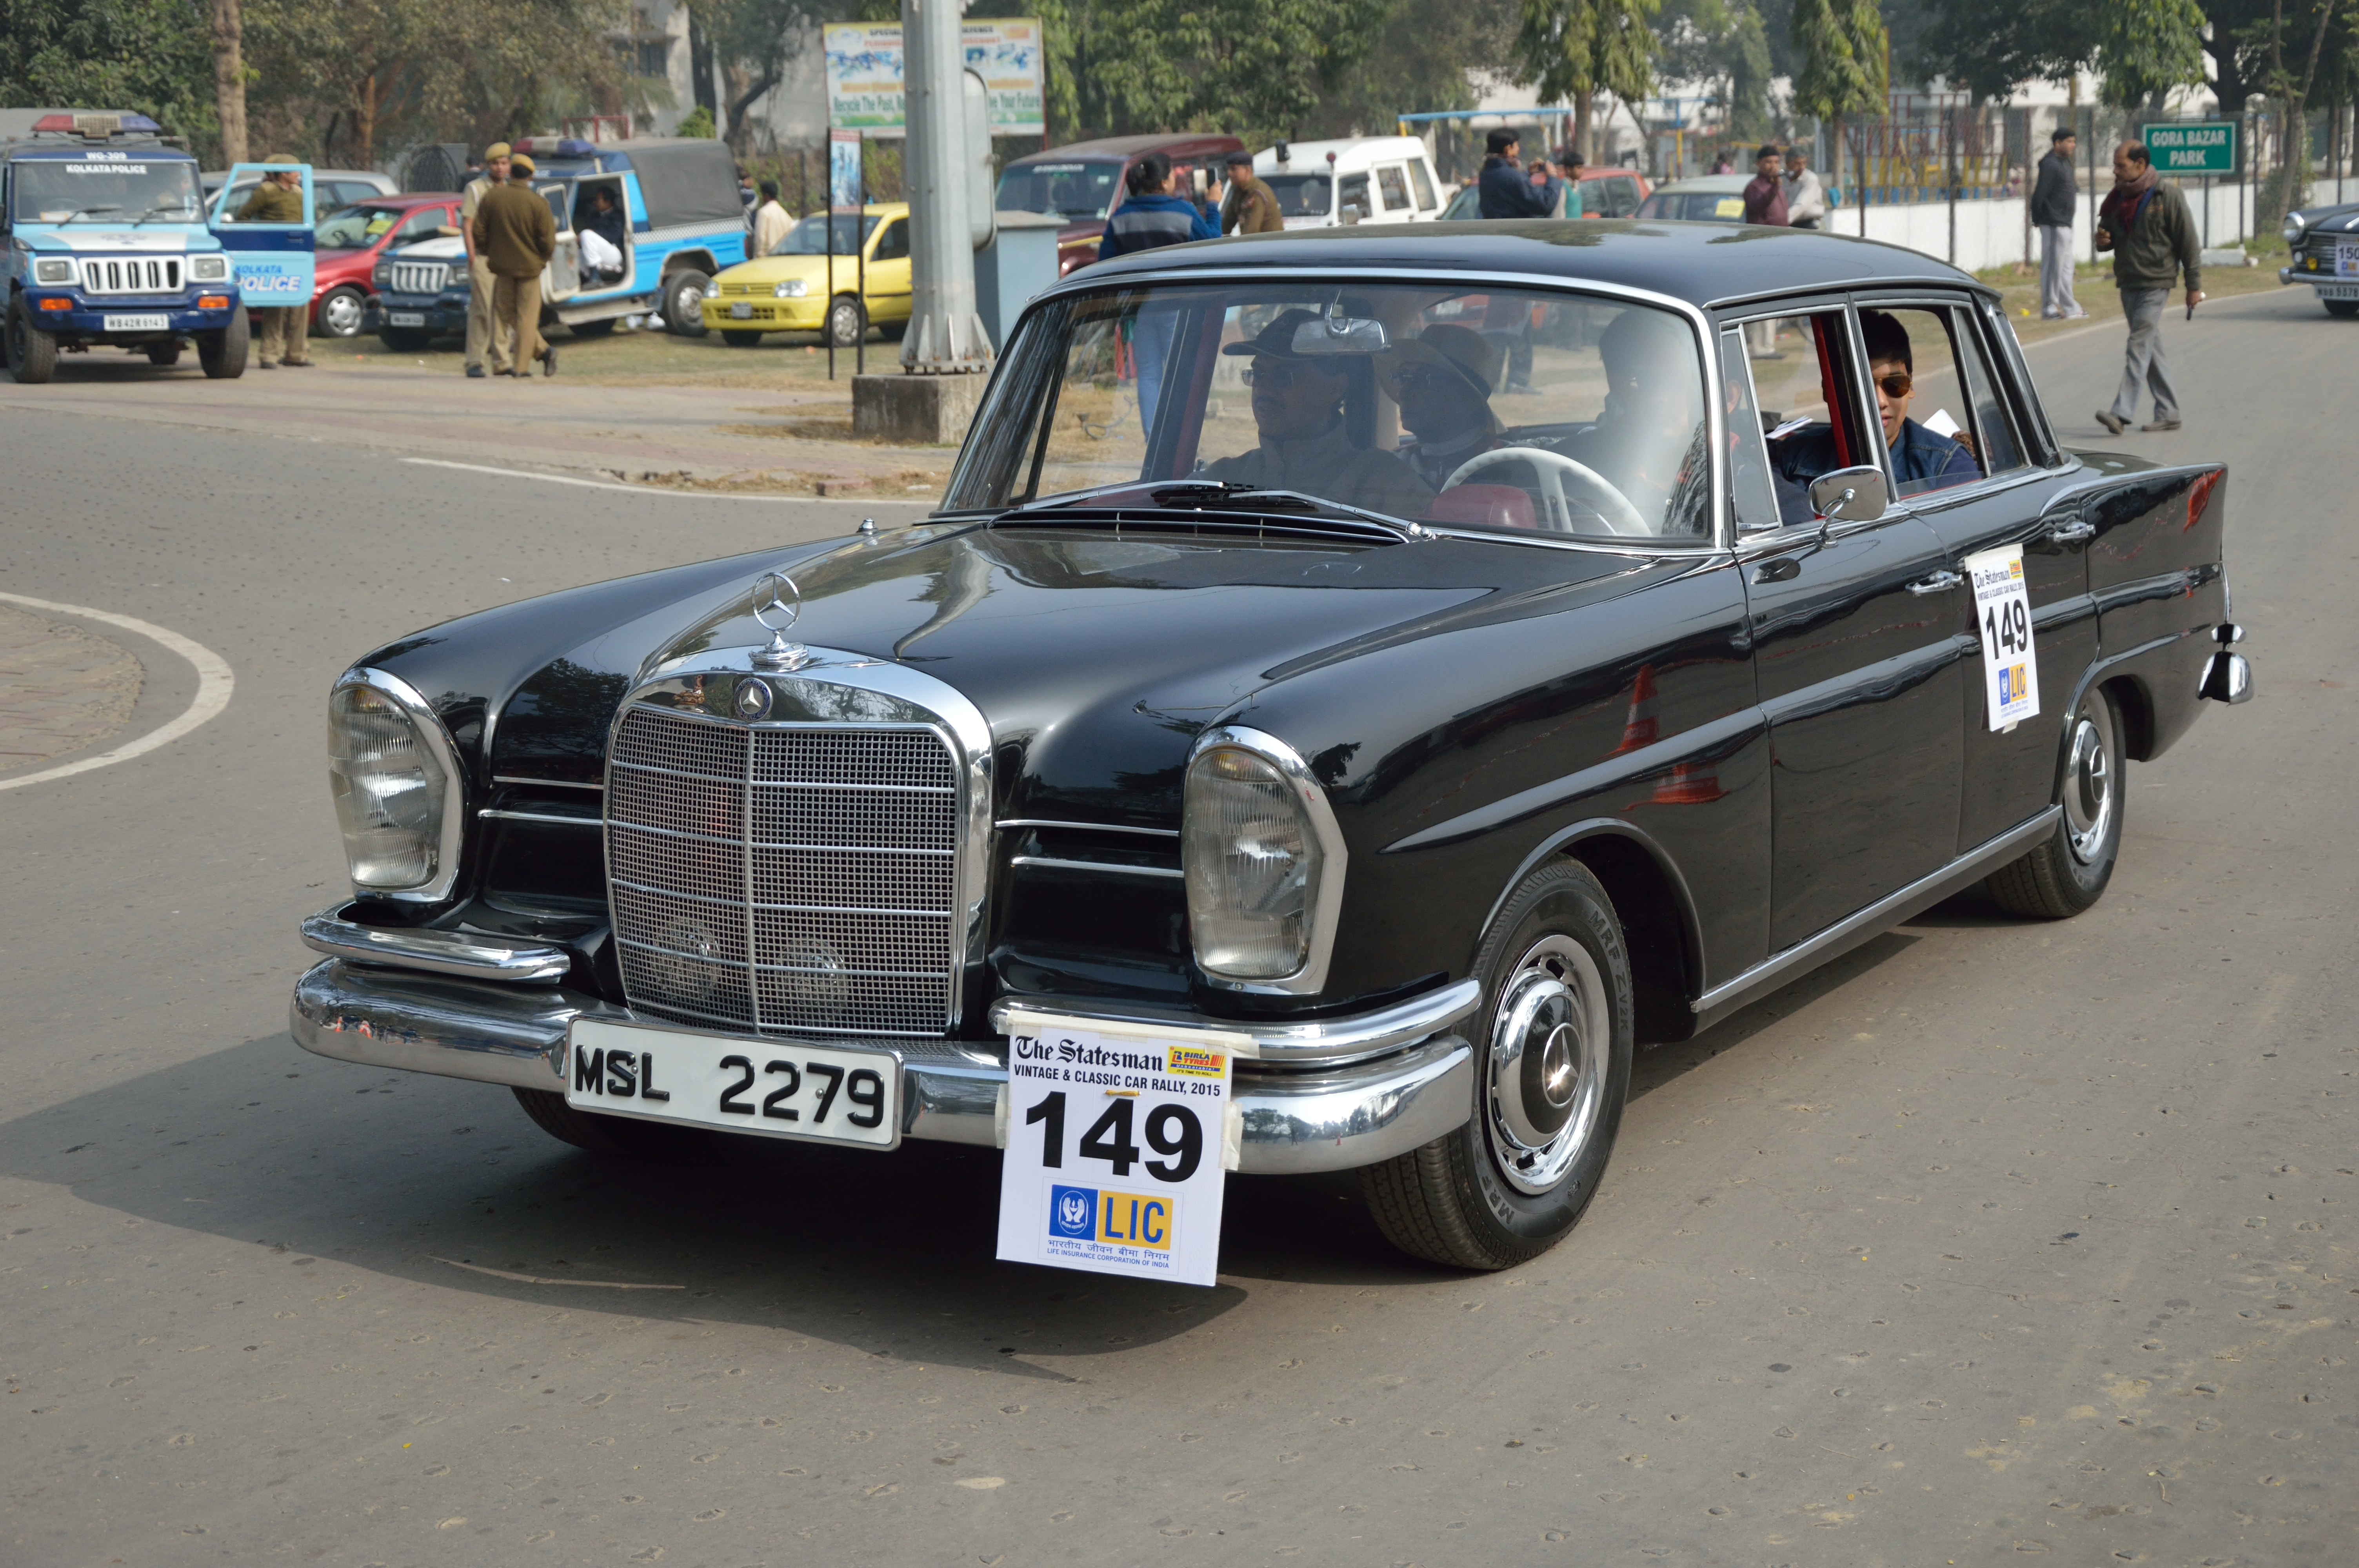 File:Mercedes-Benz - 230 S - 1967 - 2306 cc - 6 cyl